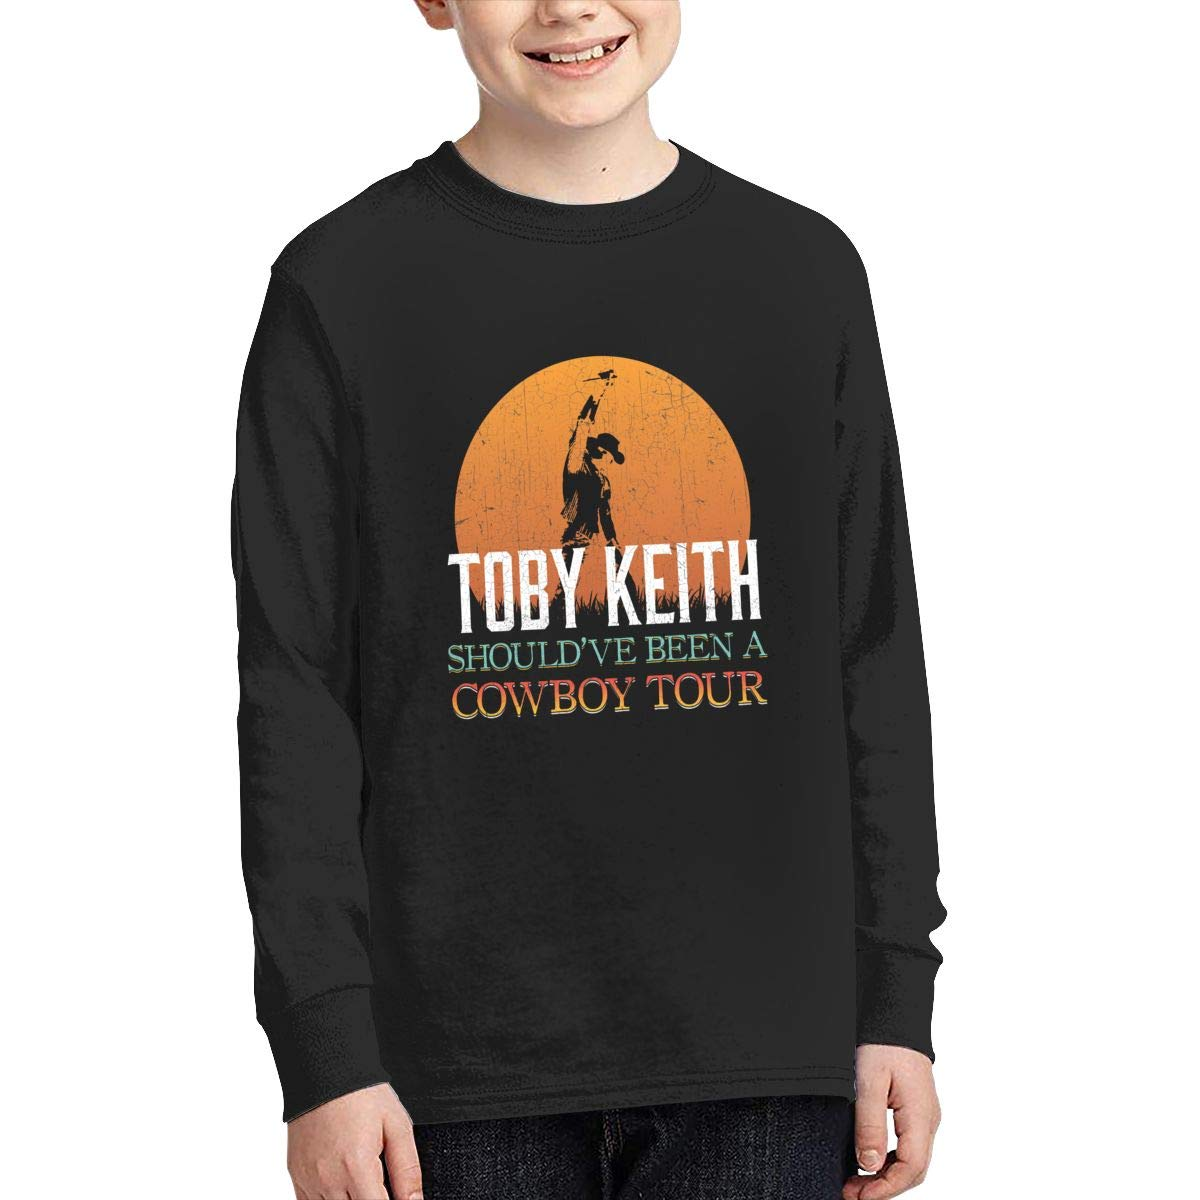 Toby Keith Boys Fashion Classic Long Sleeve T-Shirt Boy Long Sleeve Cotton Round Neck T-Shirt